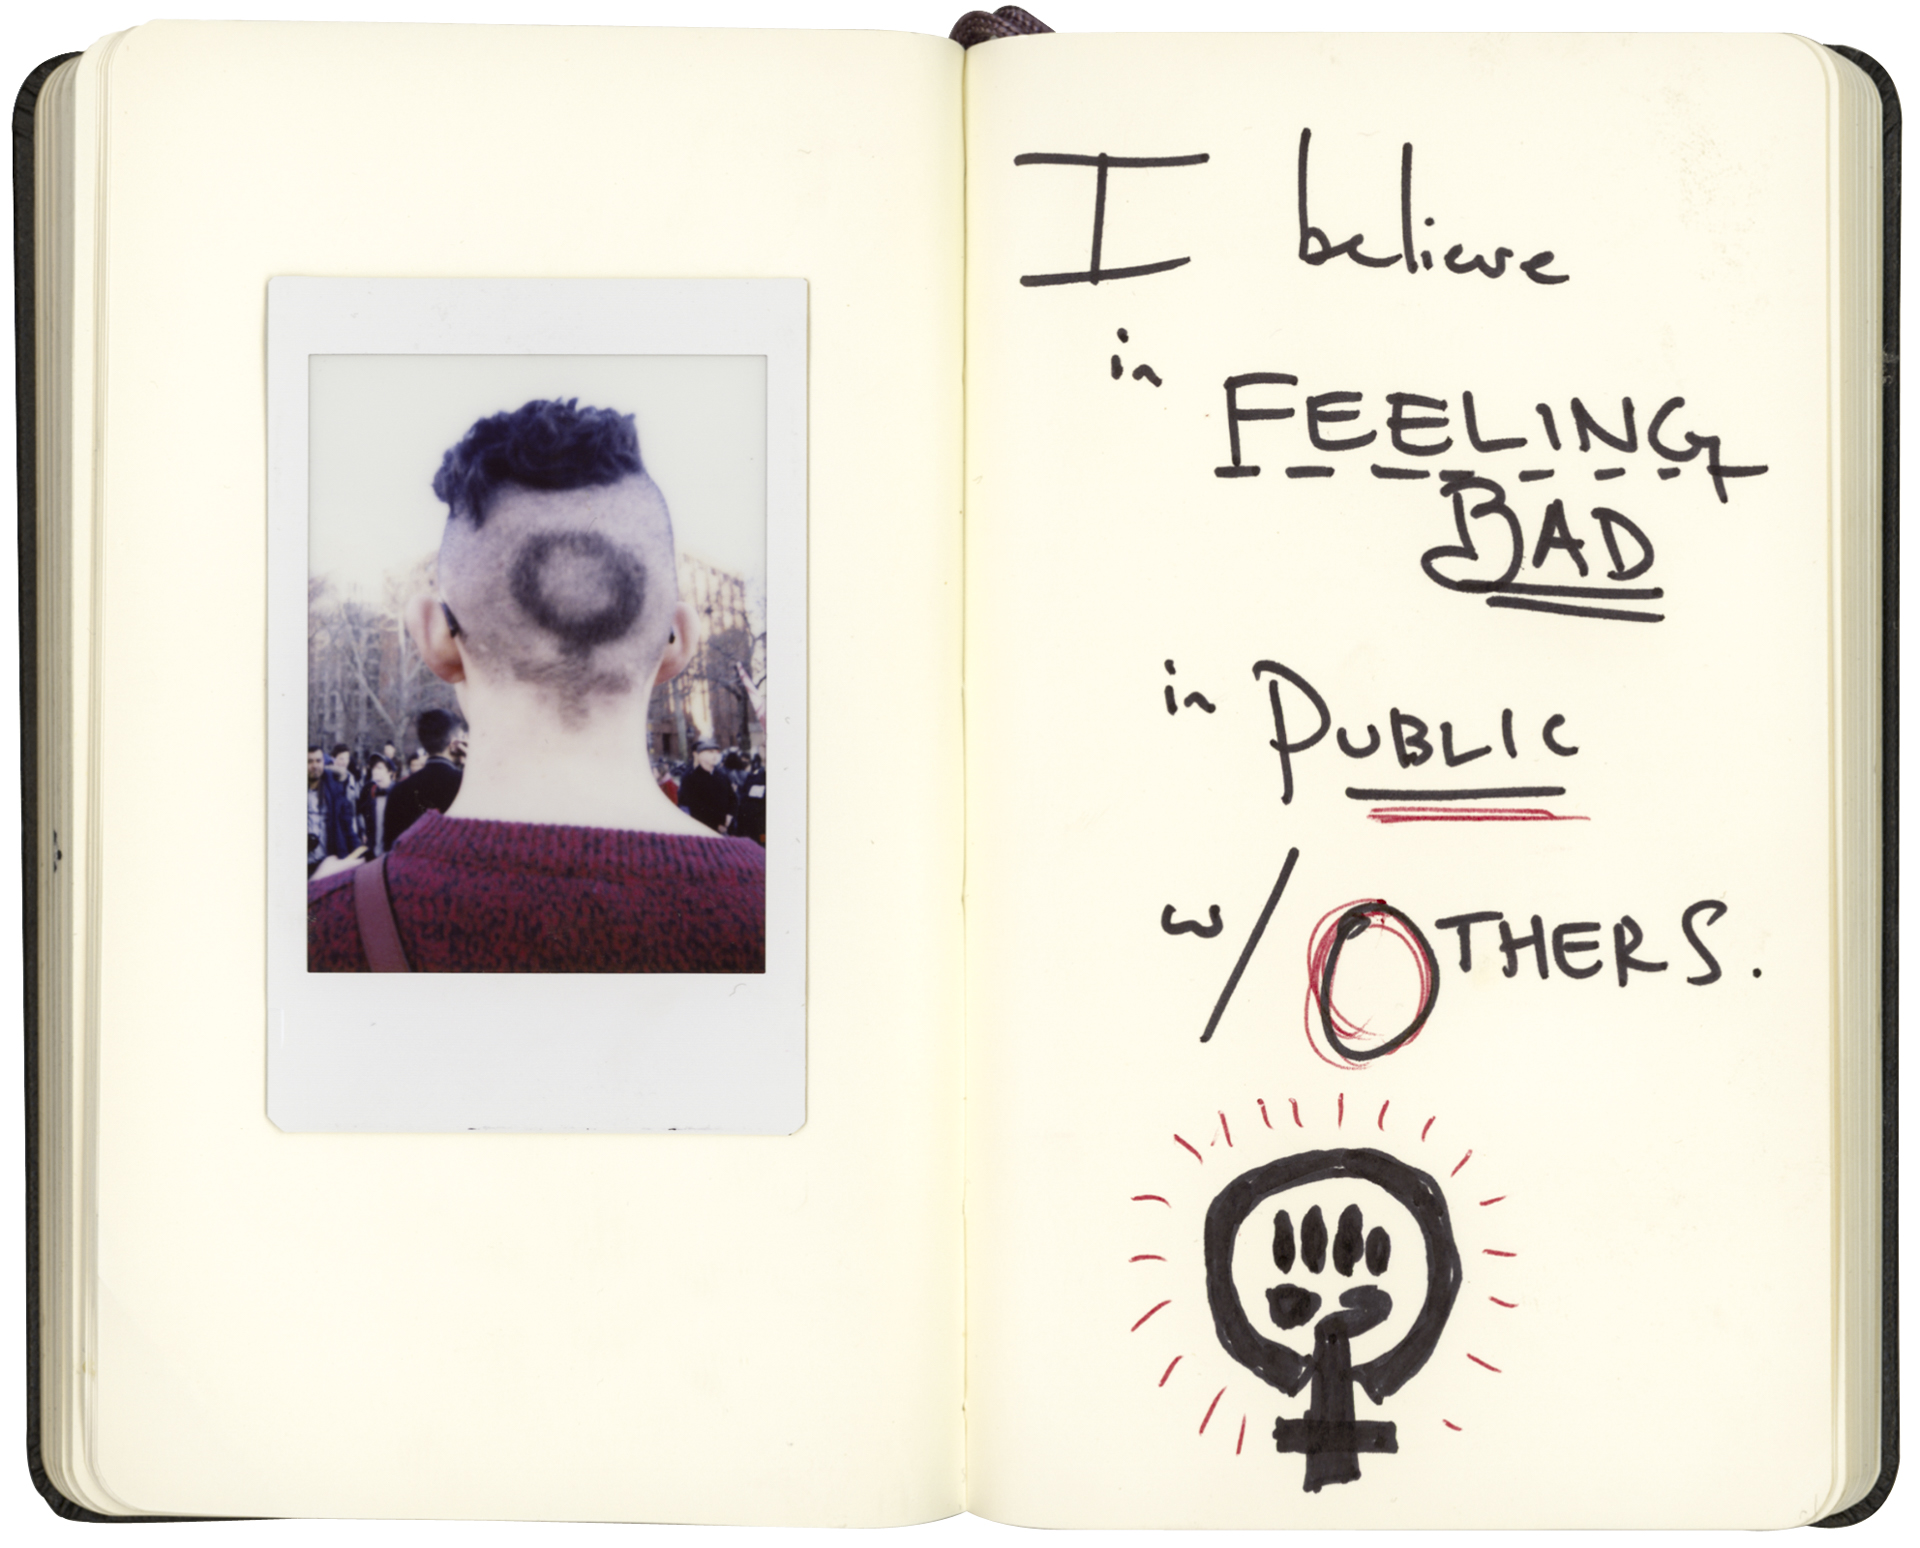 """08 Mar 2017 - Washington Square Park, New York - International Women's DayAndrea Long Chu, 24, Ocean Hill (Brooklyn), Ph.D. student""""I believe in feeling bad in public w/ others.""""Credit: Cédric von NiederhäusernINFO:Notebook digitally altered to fit layout dimensions"""